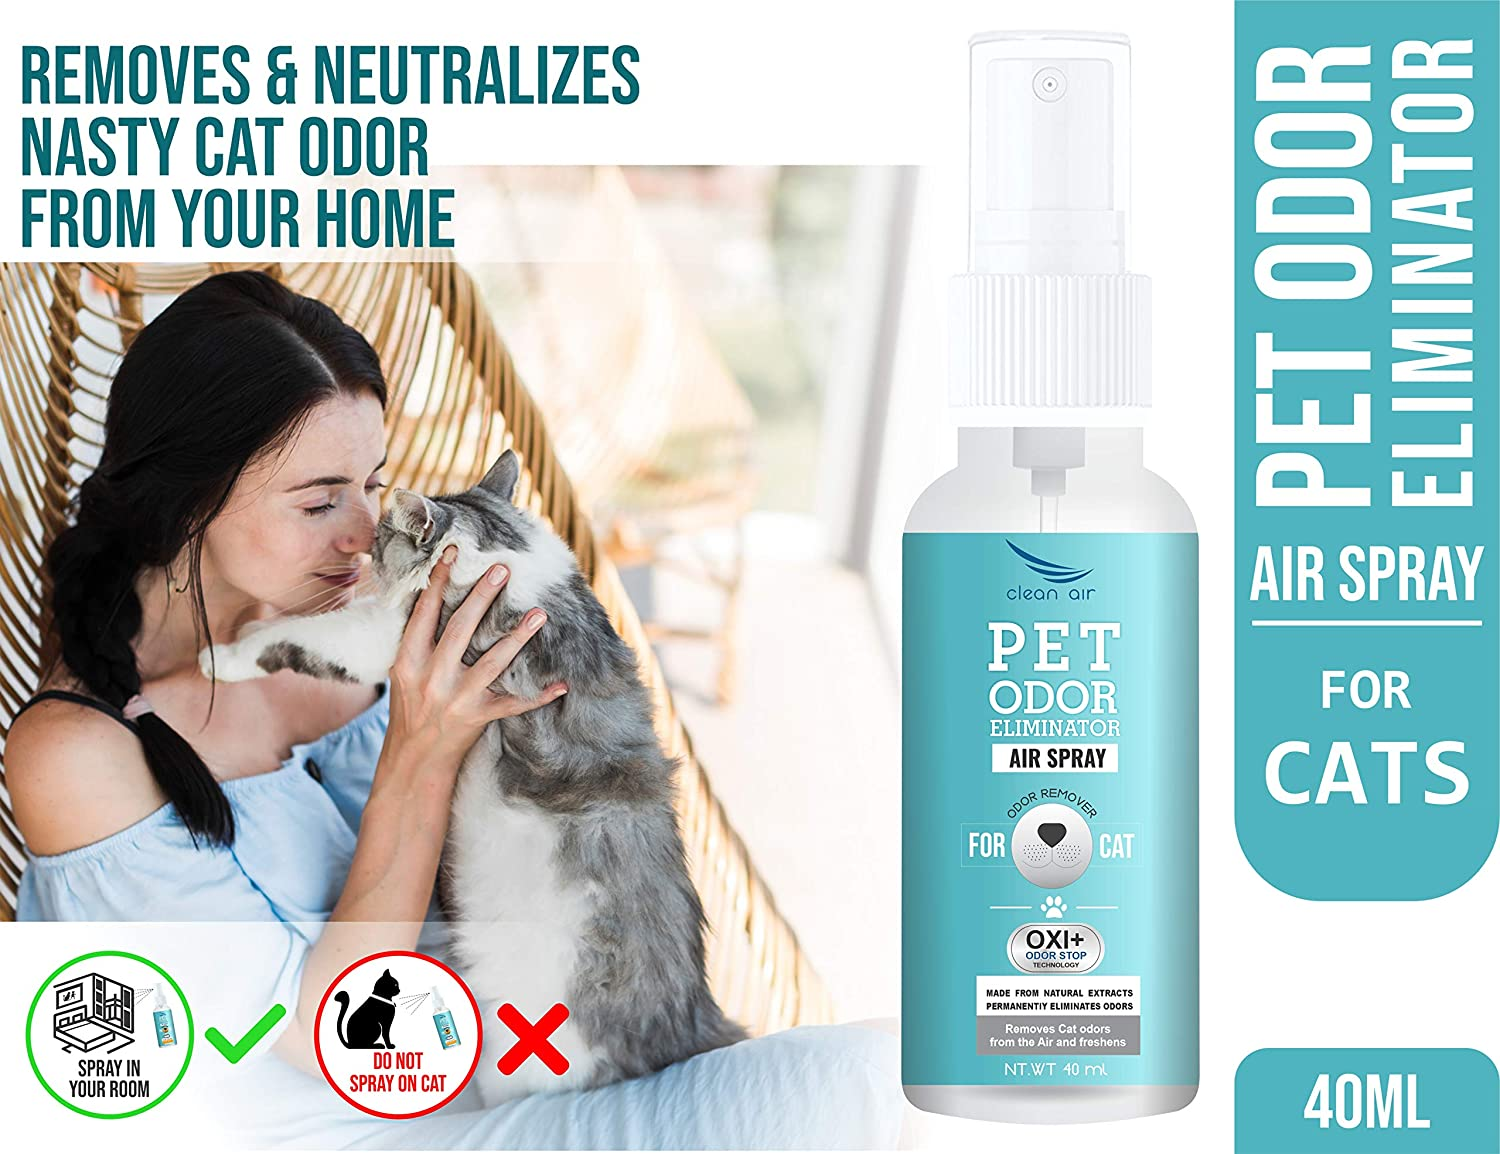 clean-air-cat-odor-eliminating-air-spray-for-pets